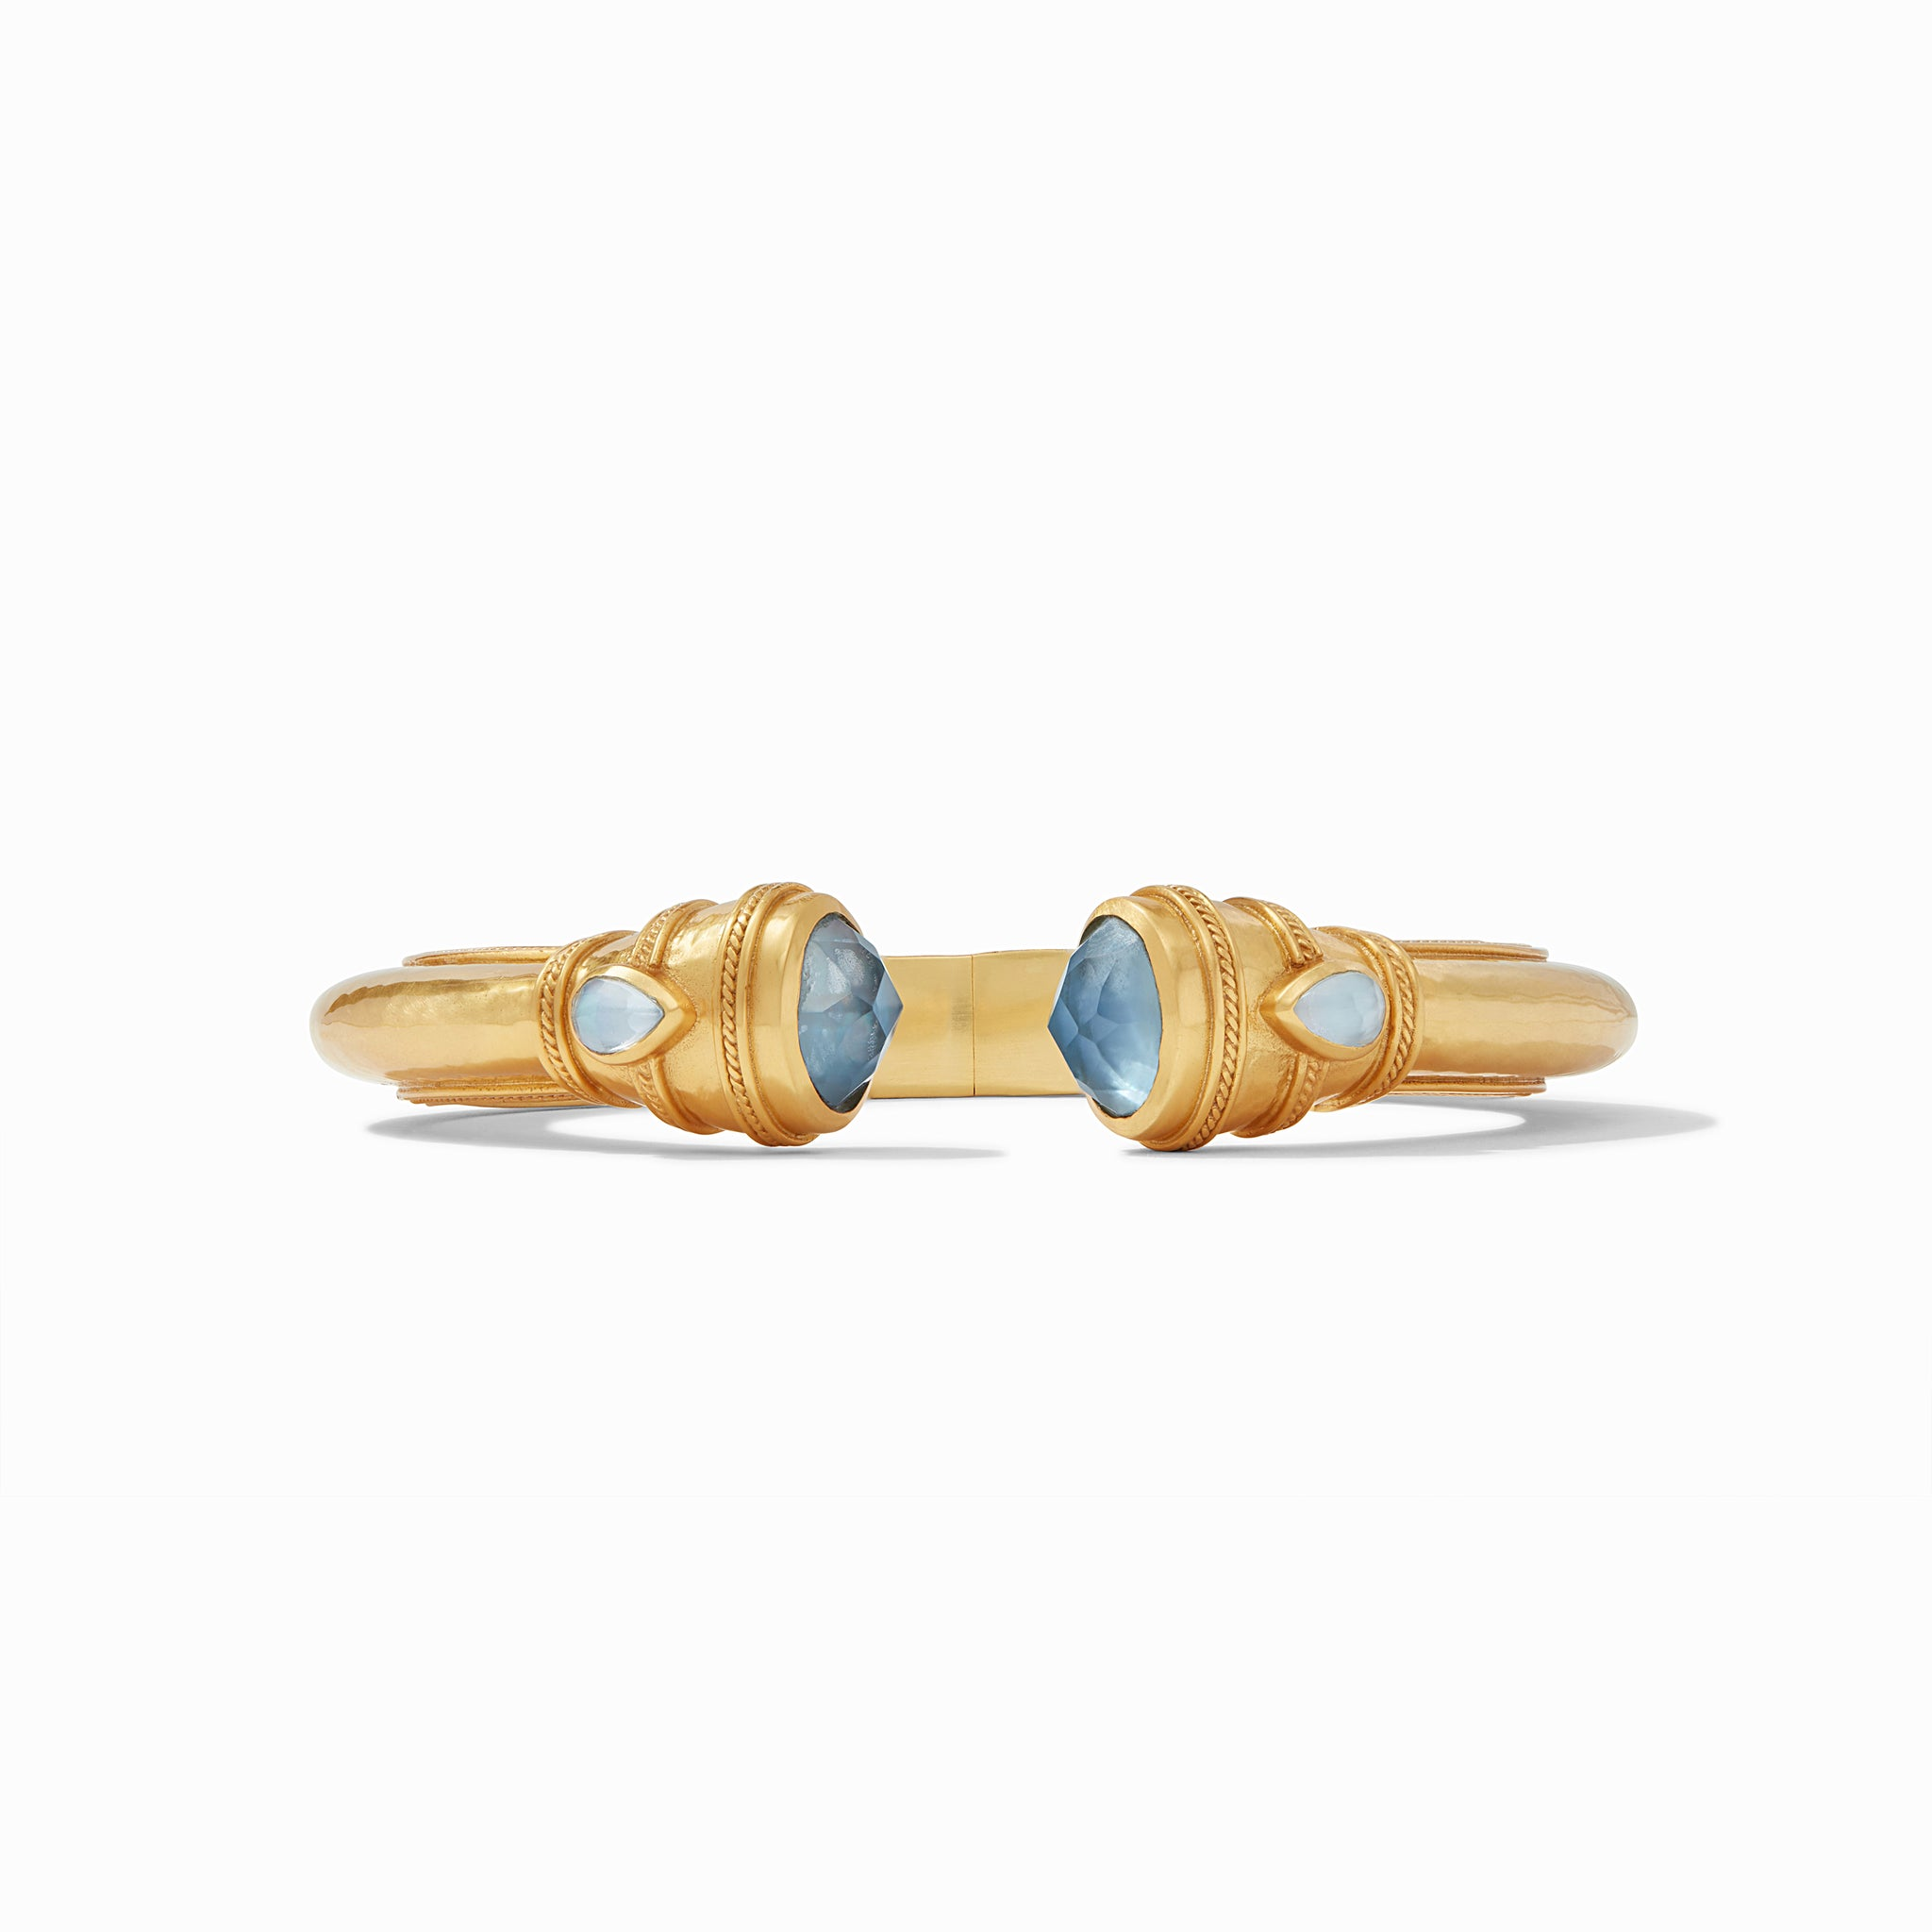 Cassis, a Julie Vos Hinge Cuff bracelet in the Iridescent Chalcedony Blue option